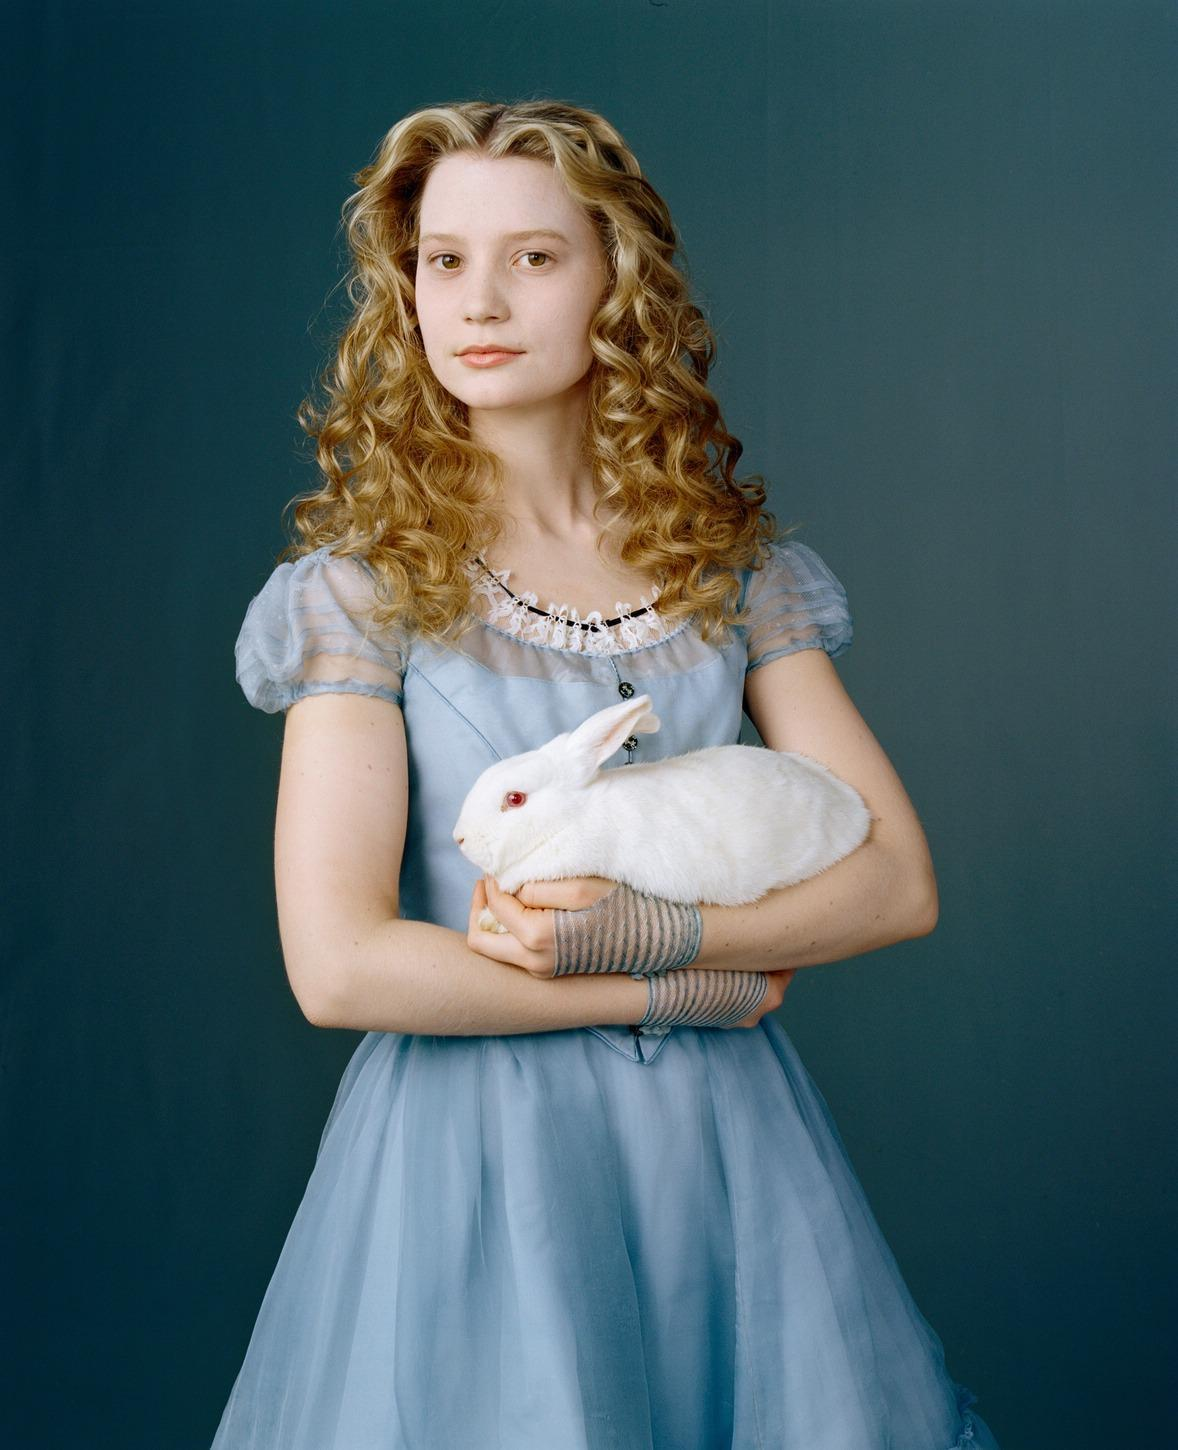 New Alice in Wonderland Mia Wasikowska Photoshoot - Alice ...